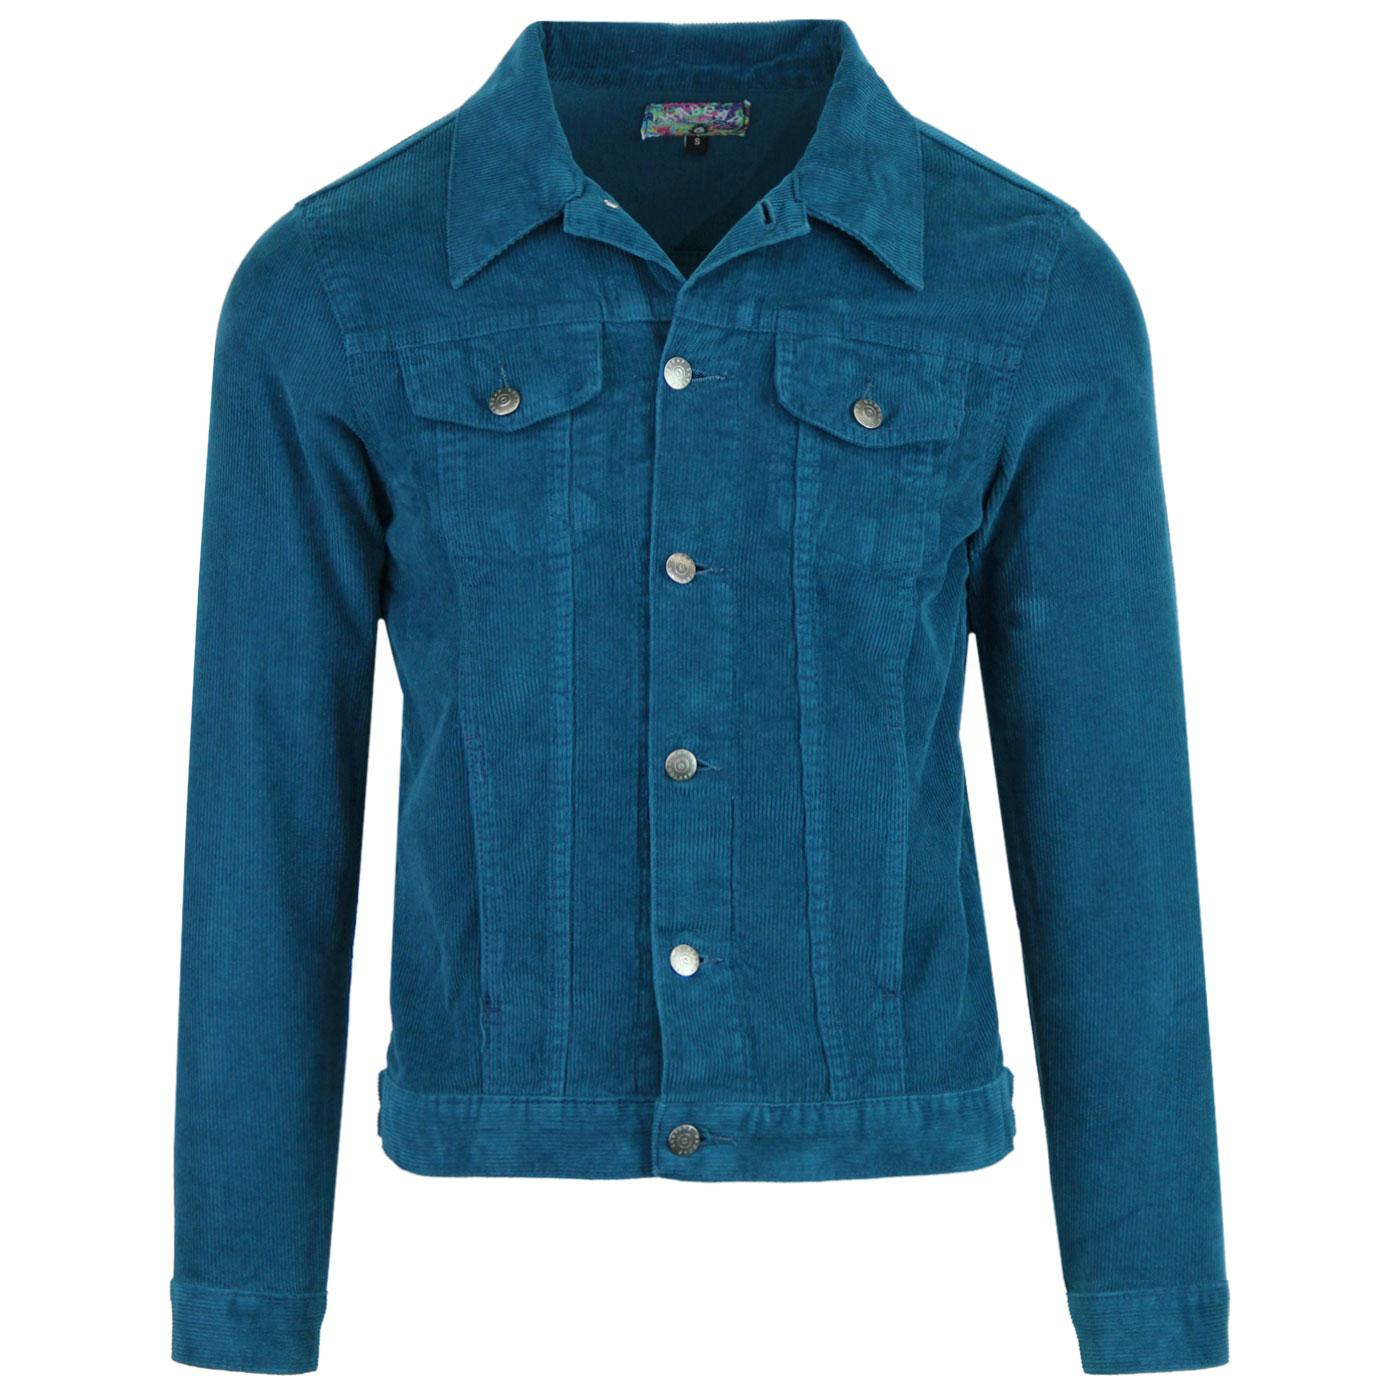 Madcap England Woburn Retro Mod Cord Western Jacket in Ink Blue